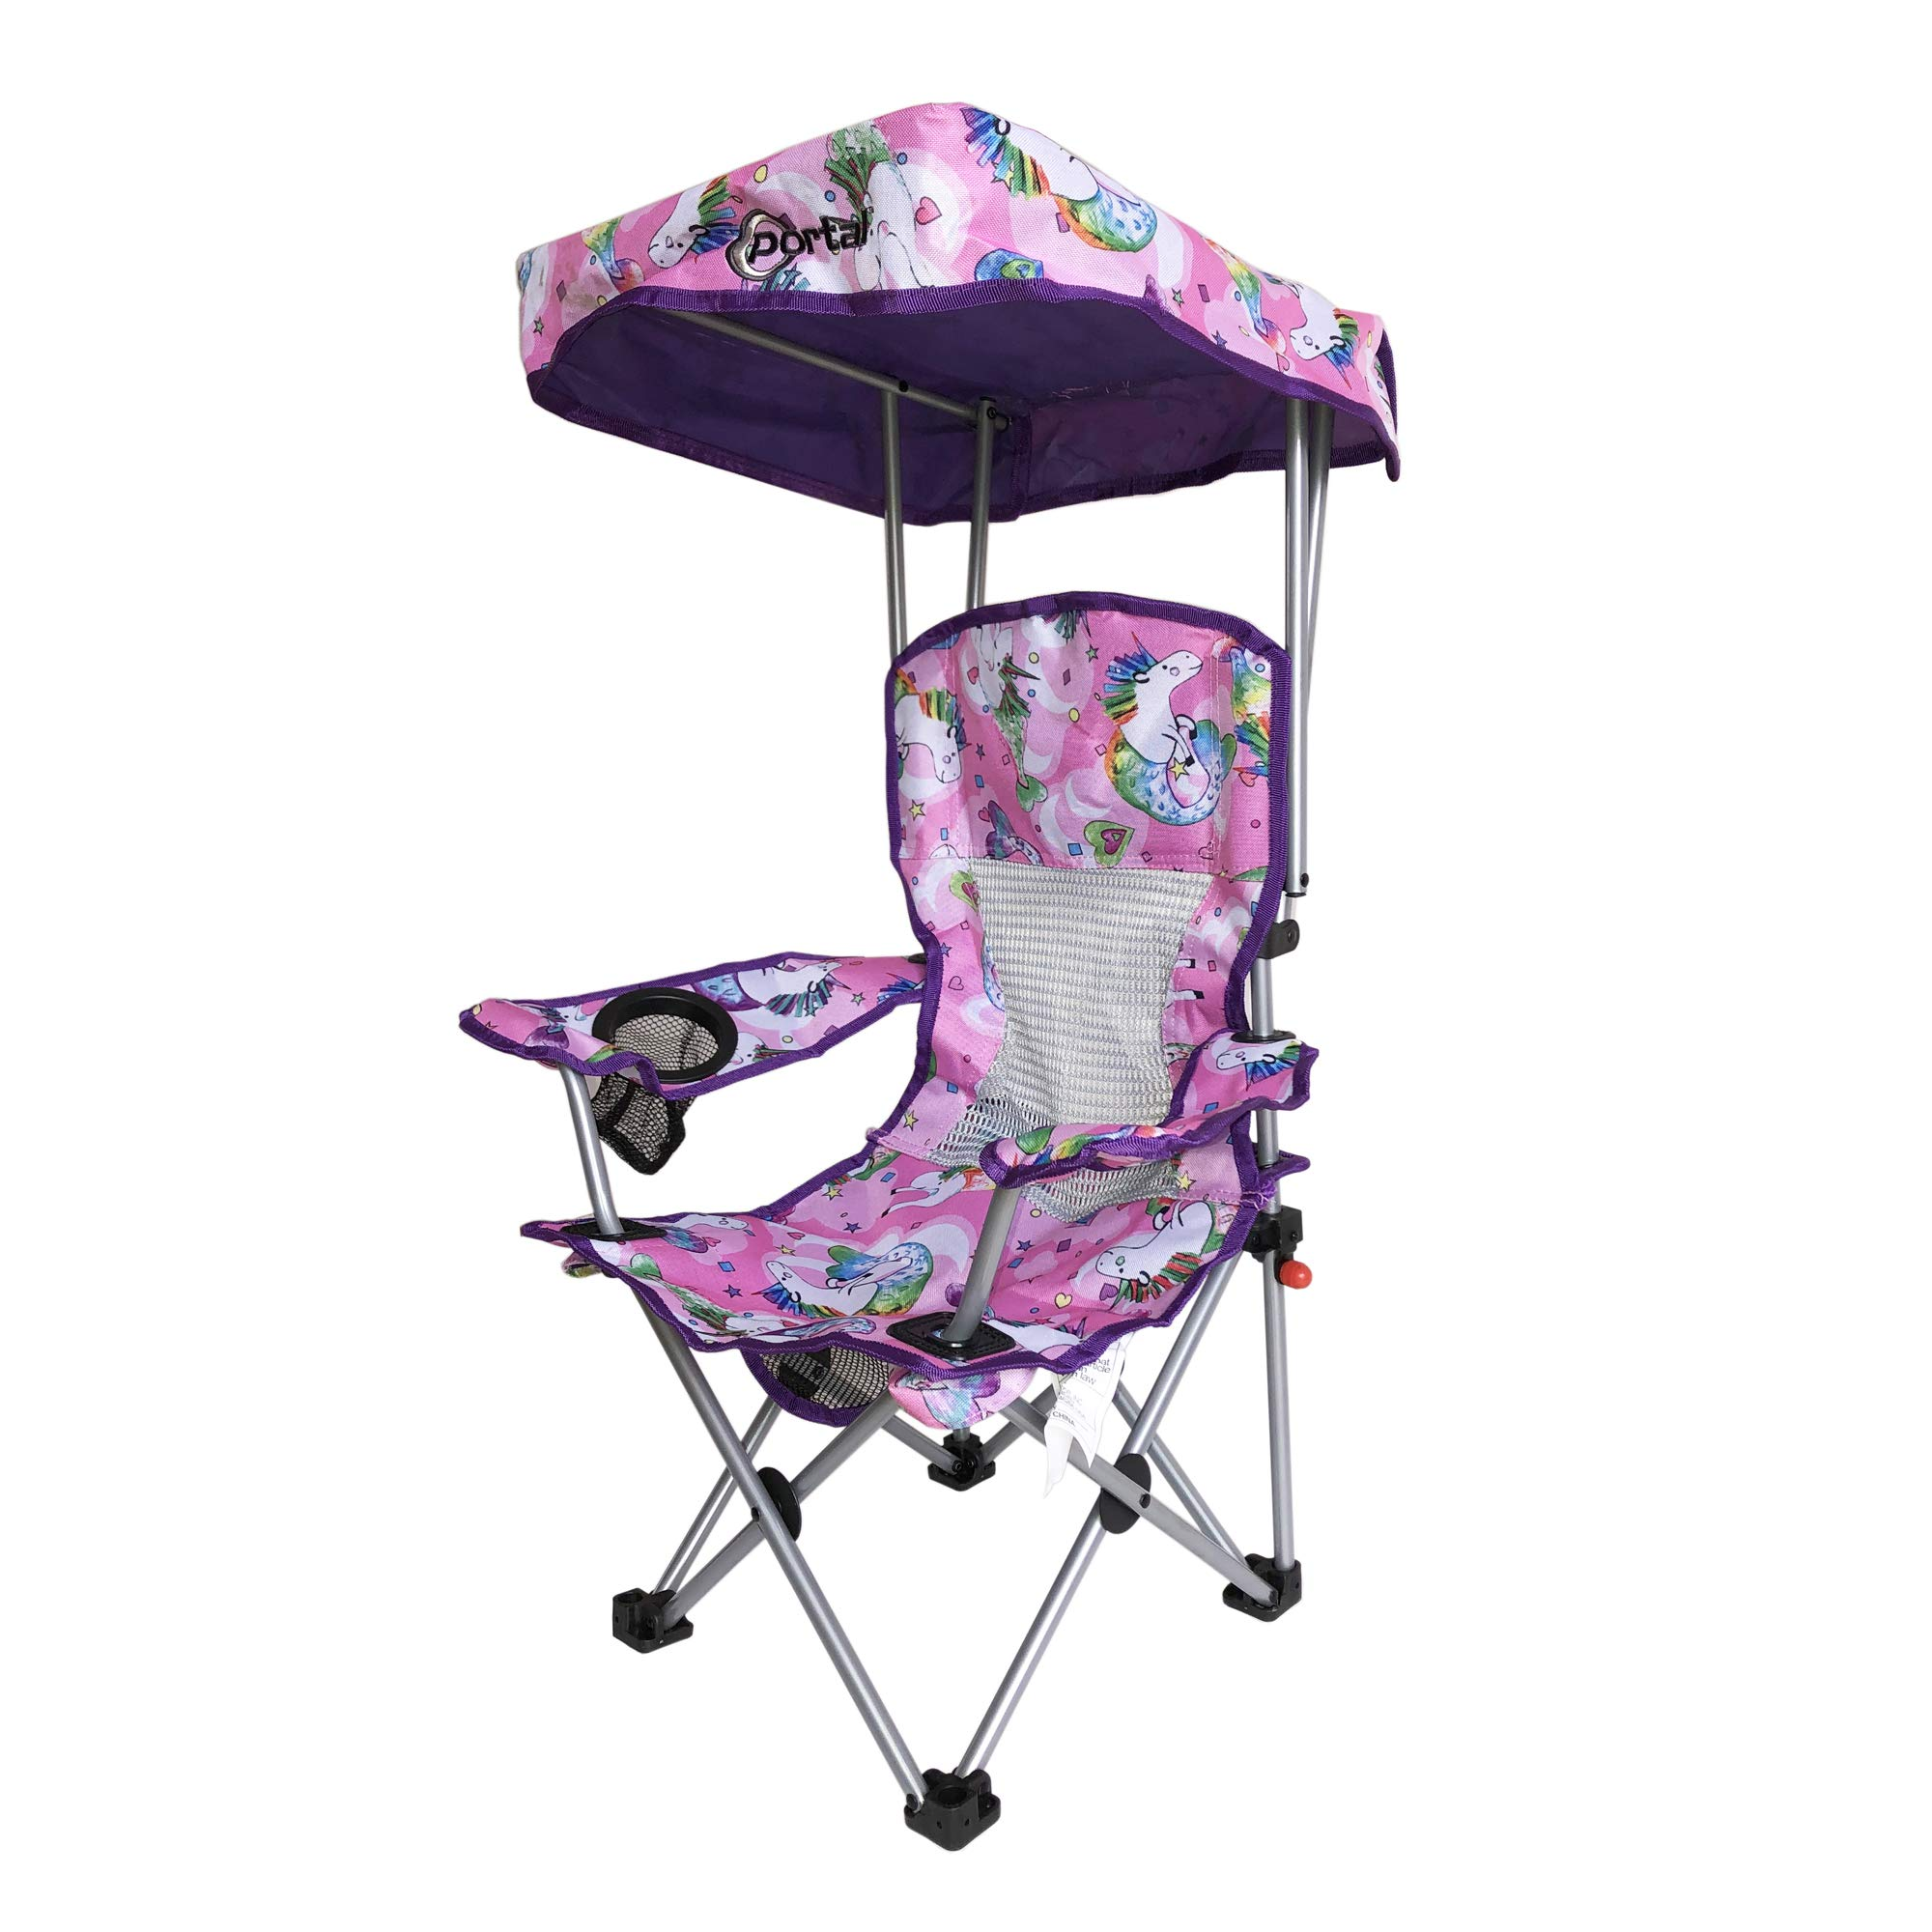 Kid's Folding Chair with Canopy and Durable Carry Bag Purple Unicorn by Westfield Outdoor (Image #2)